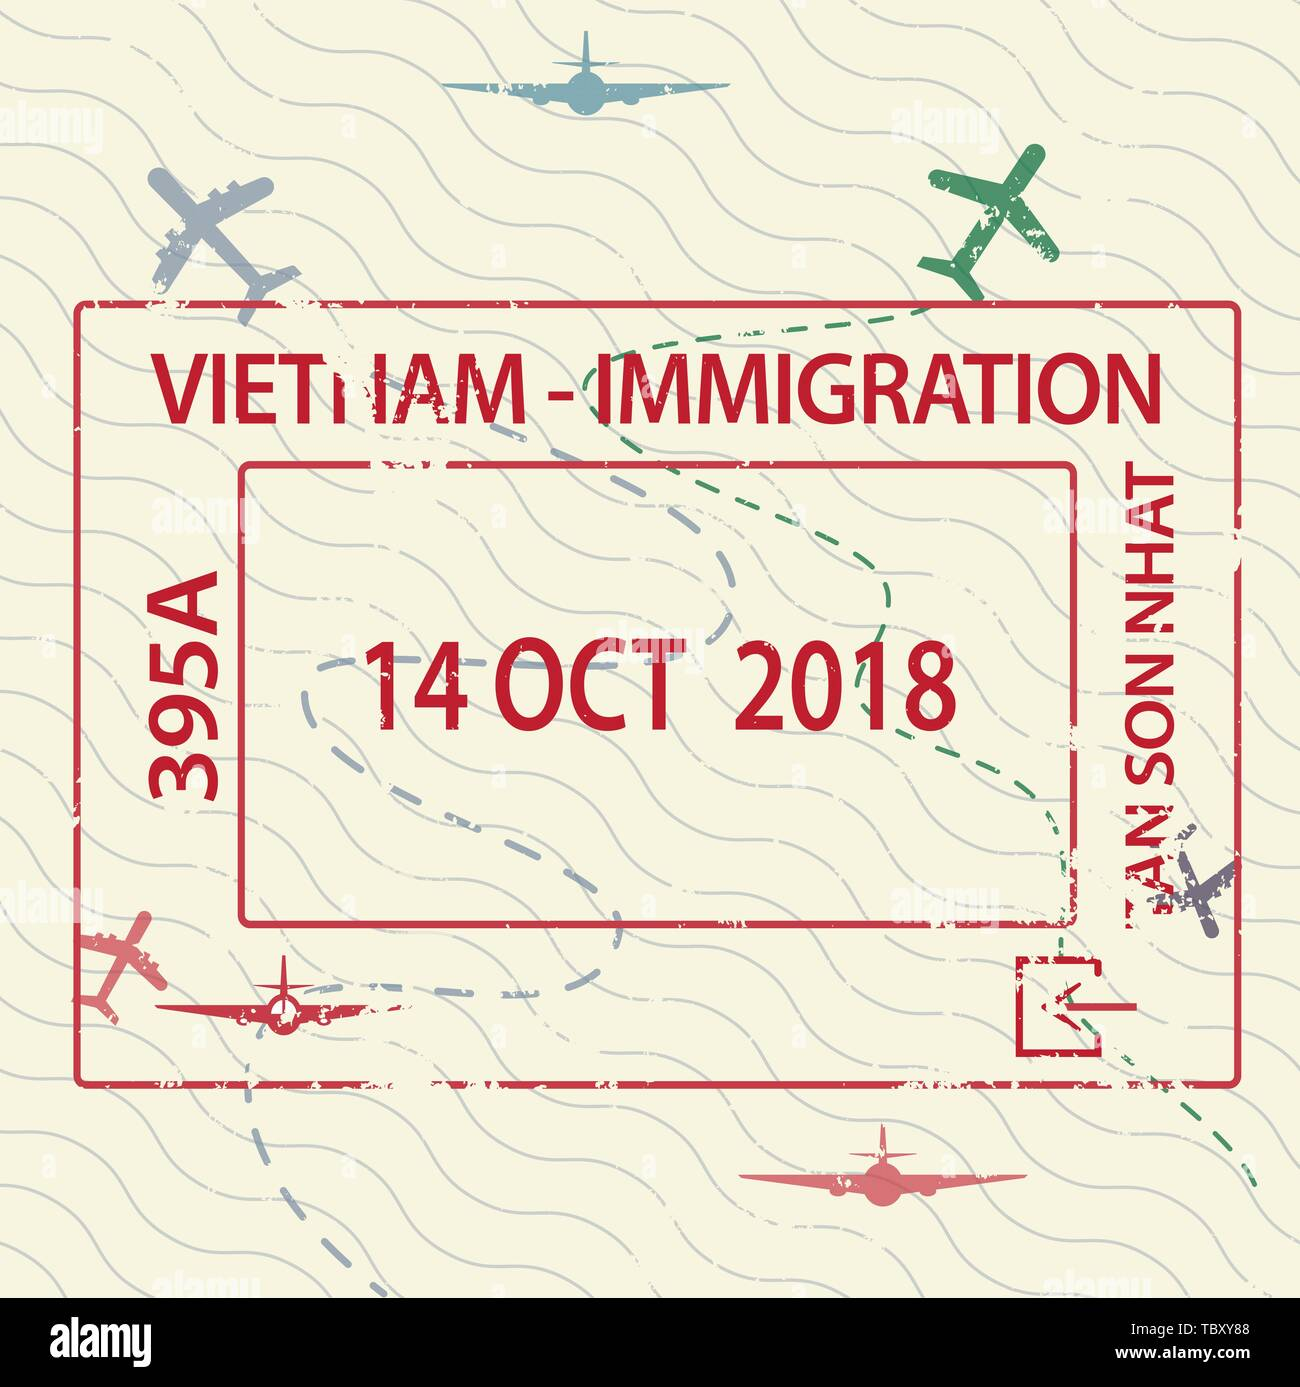 Vietnamese Vector Vectors Stock Photos & Vietnamese Vector